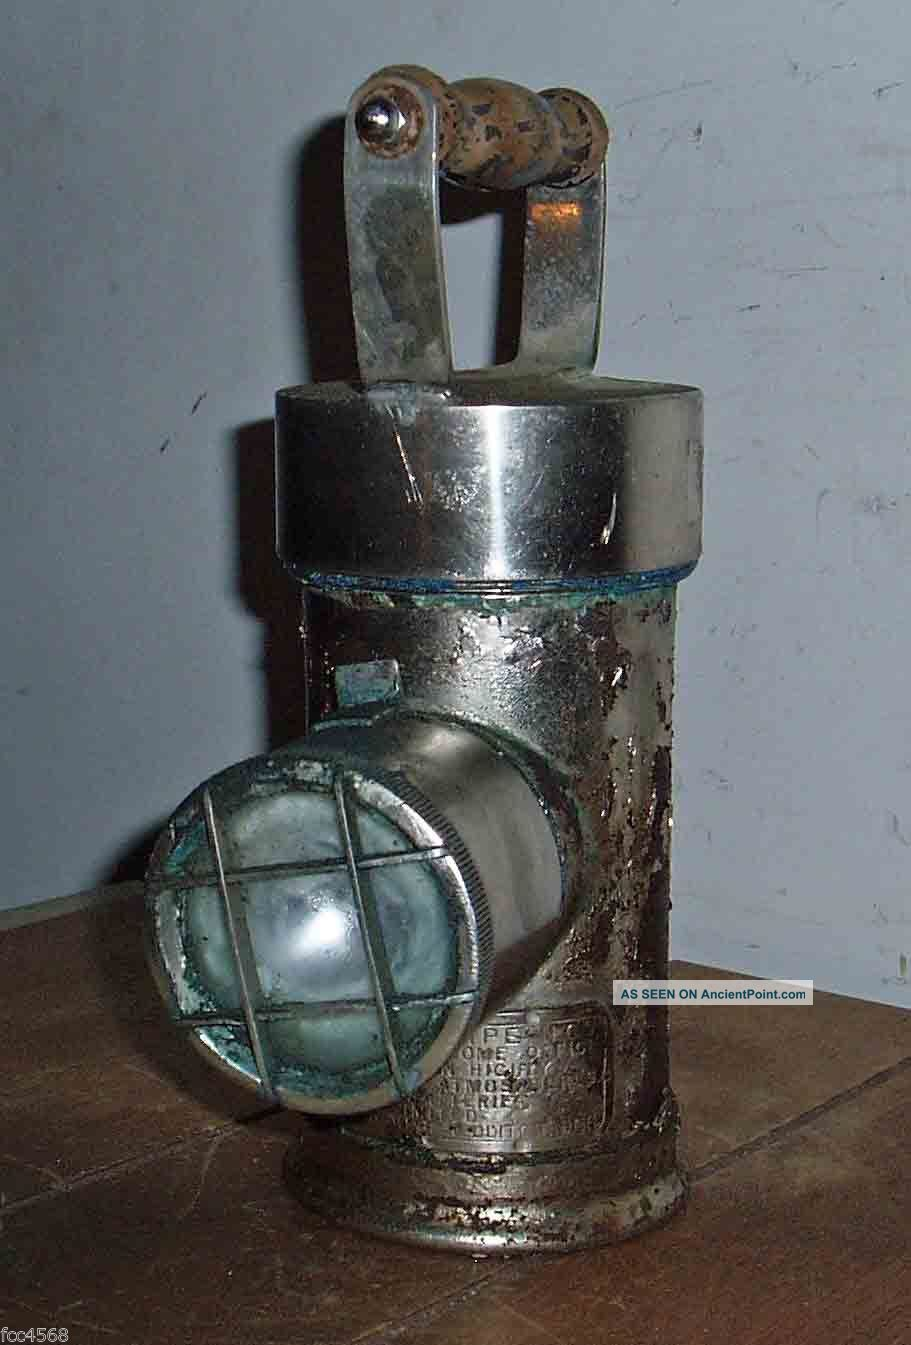 C1950 Nife Safety Lamp Approved By Hm Govenment For Use Highly Inflammable Areas Uncategorized photo